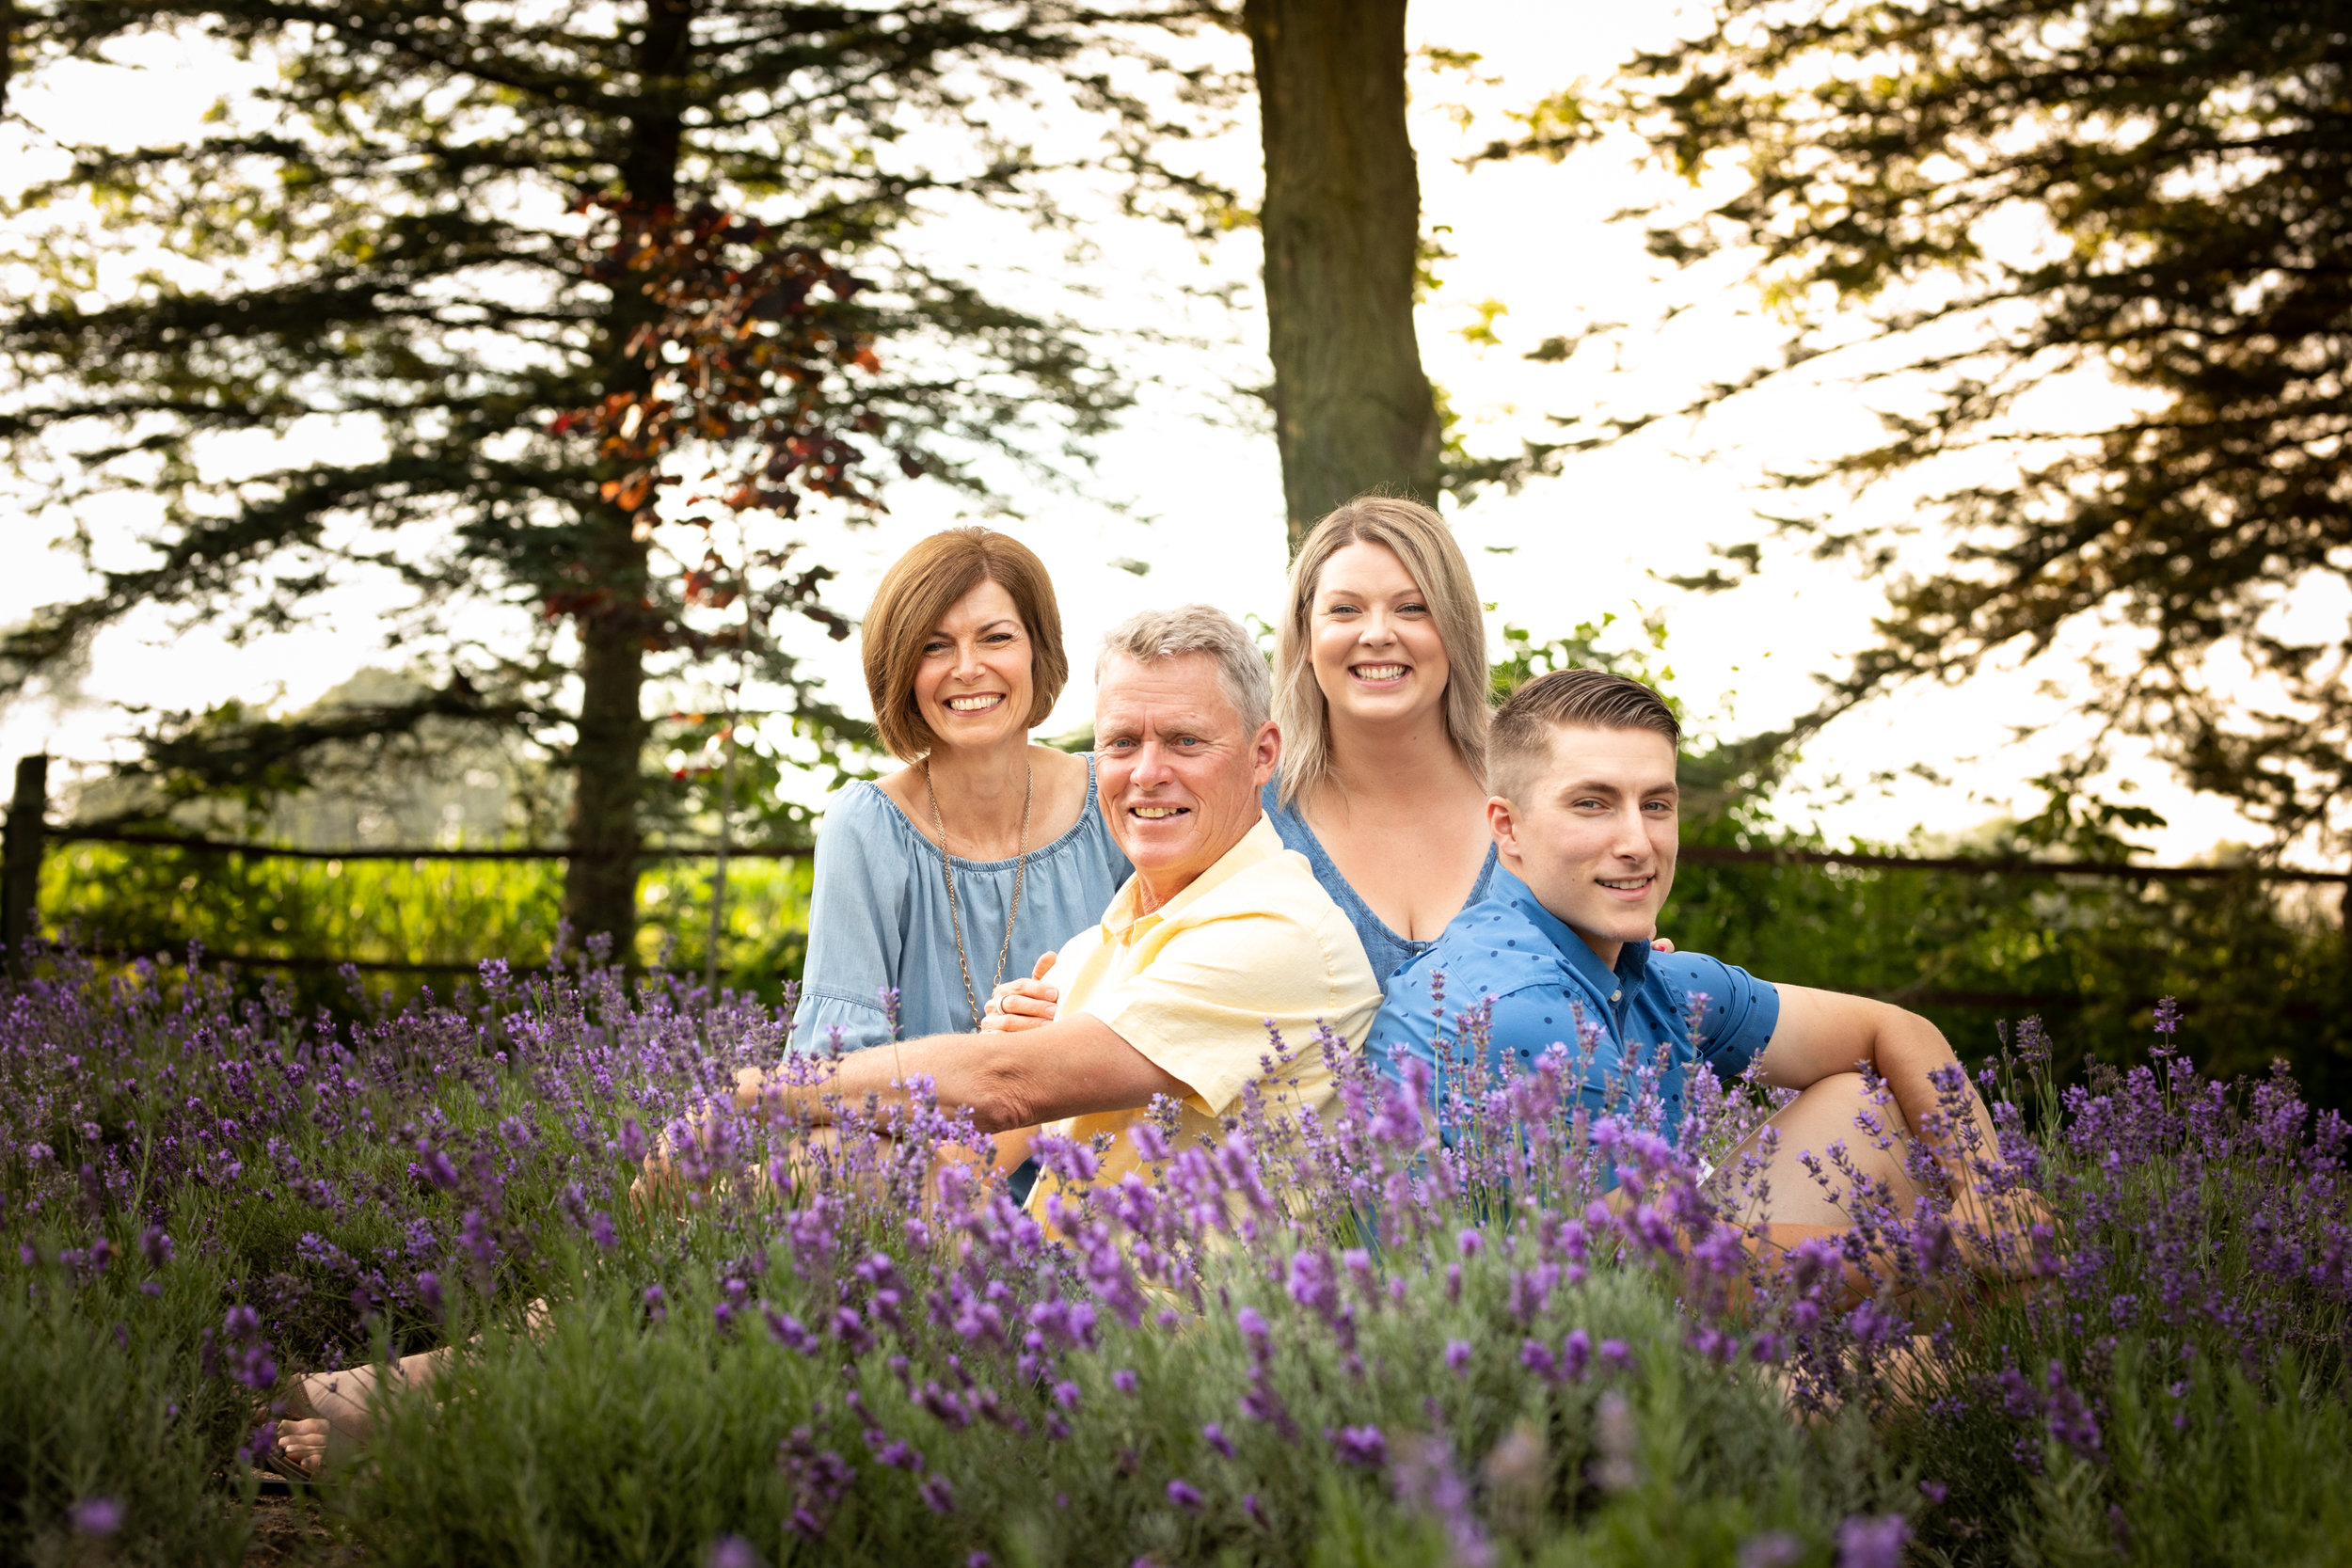 Family-agricultural-photographer-jodie-aldred-photography-rural-country-farm-farmers-ontario-london-huron-middlesex-elgin-chatham-elgin-rural-country-outdoors-lavender.jpg